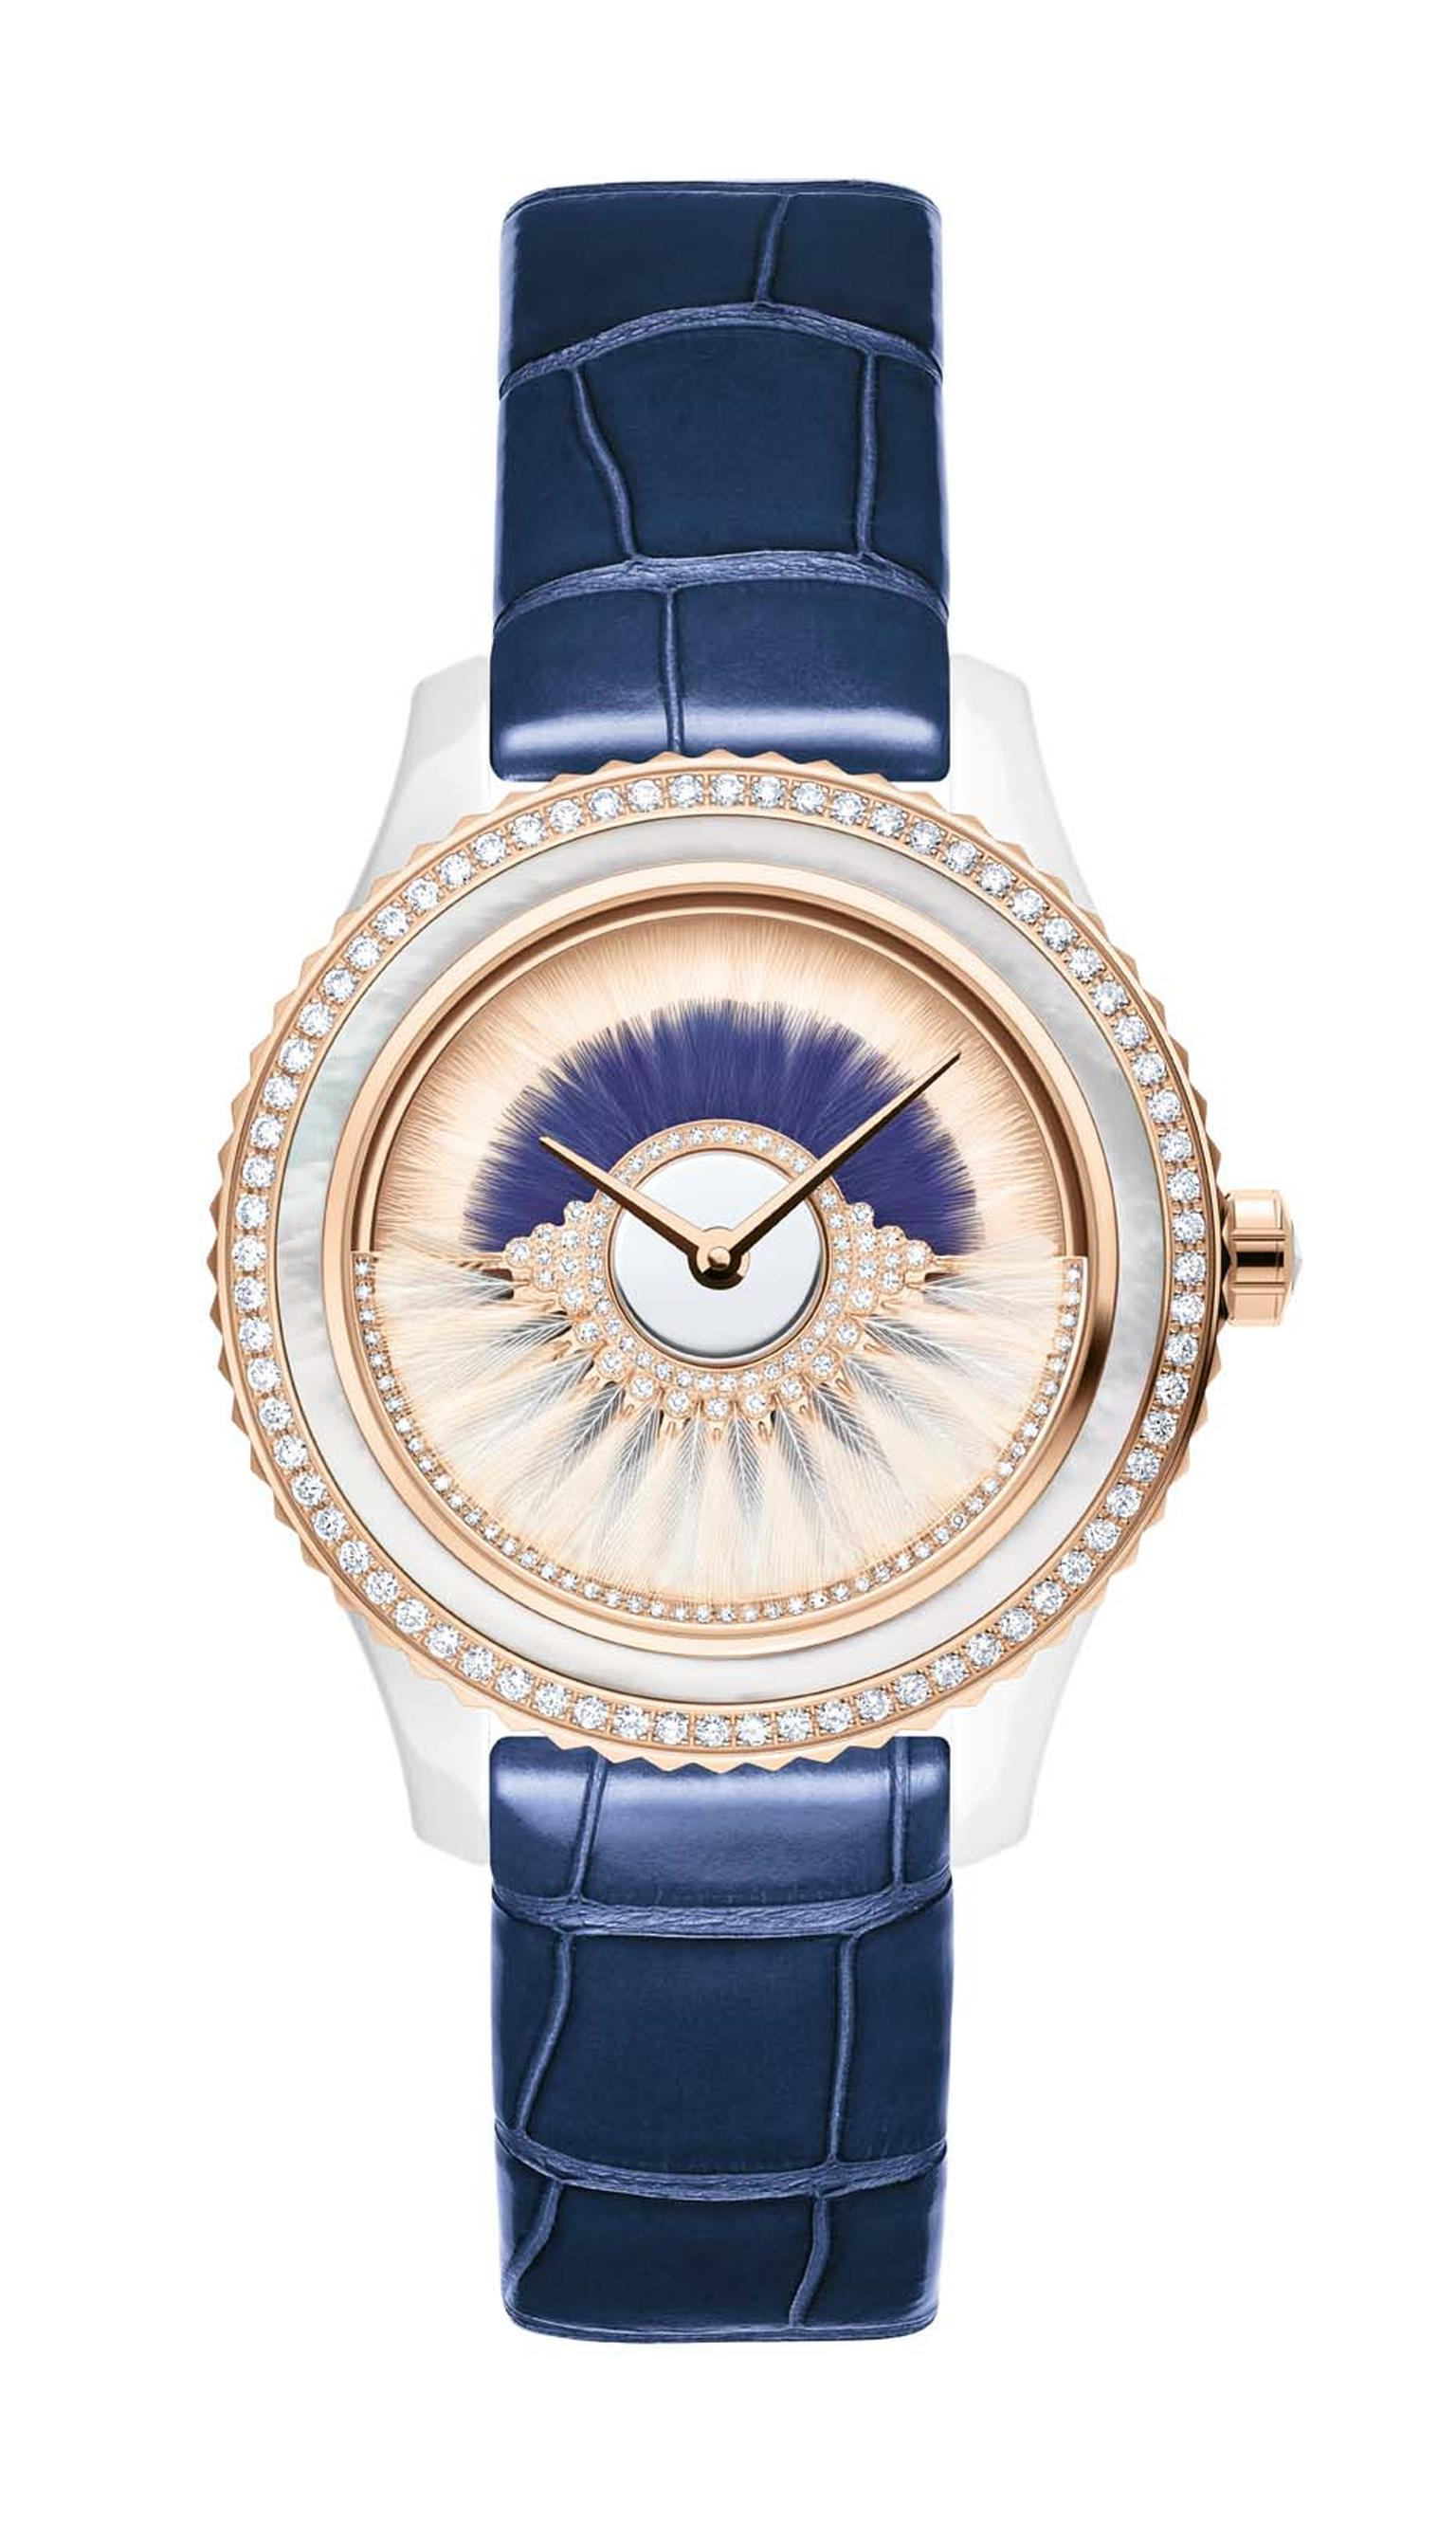 Dior VIII Grand Bal Cancan watch in a 38mm pink gold and ceramic case has a dial decorated with two rows of white and blue feather marquetry. The pink oscillating weight on the dial swings back and forwards and is set with diamonds and white feathers. Lim